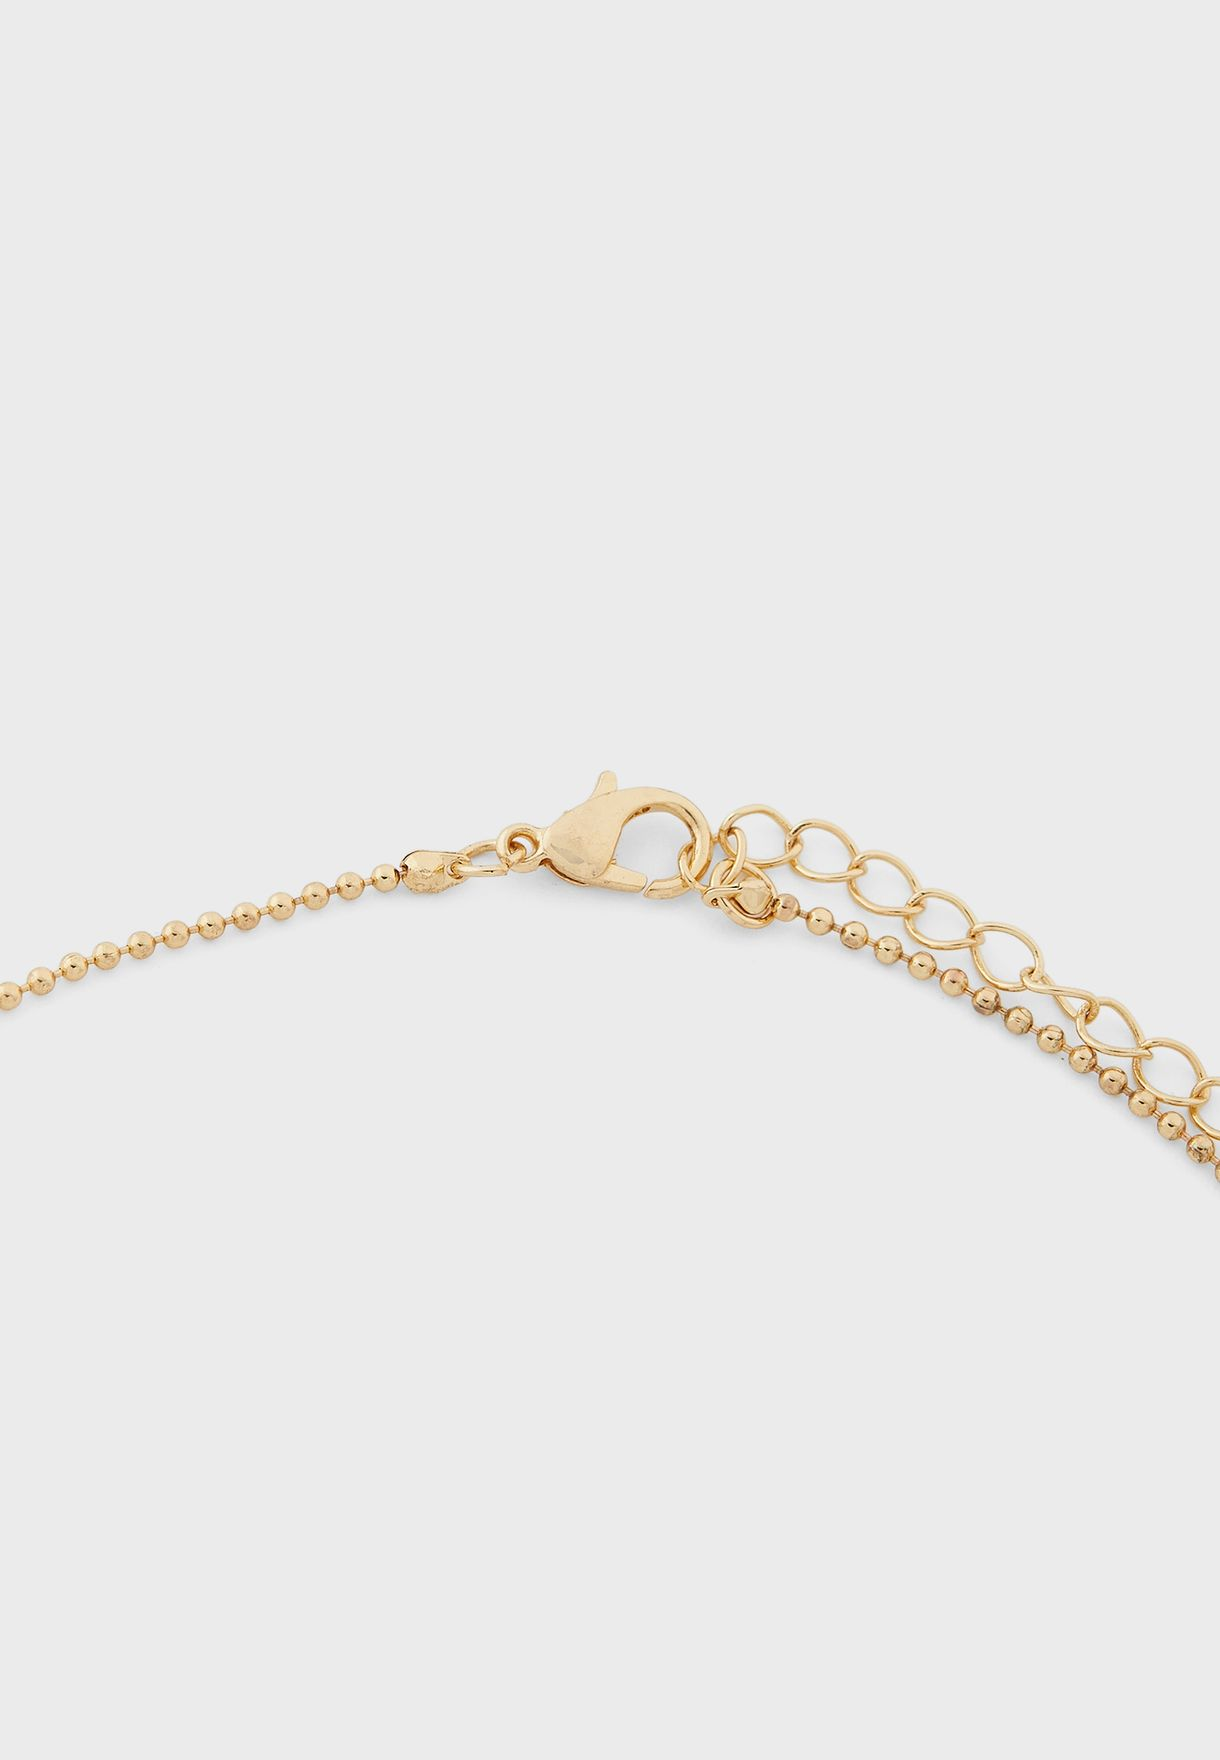 3 Layer Chain And Pearl Oval Pendent Necklace